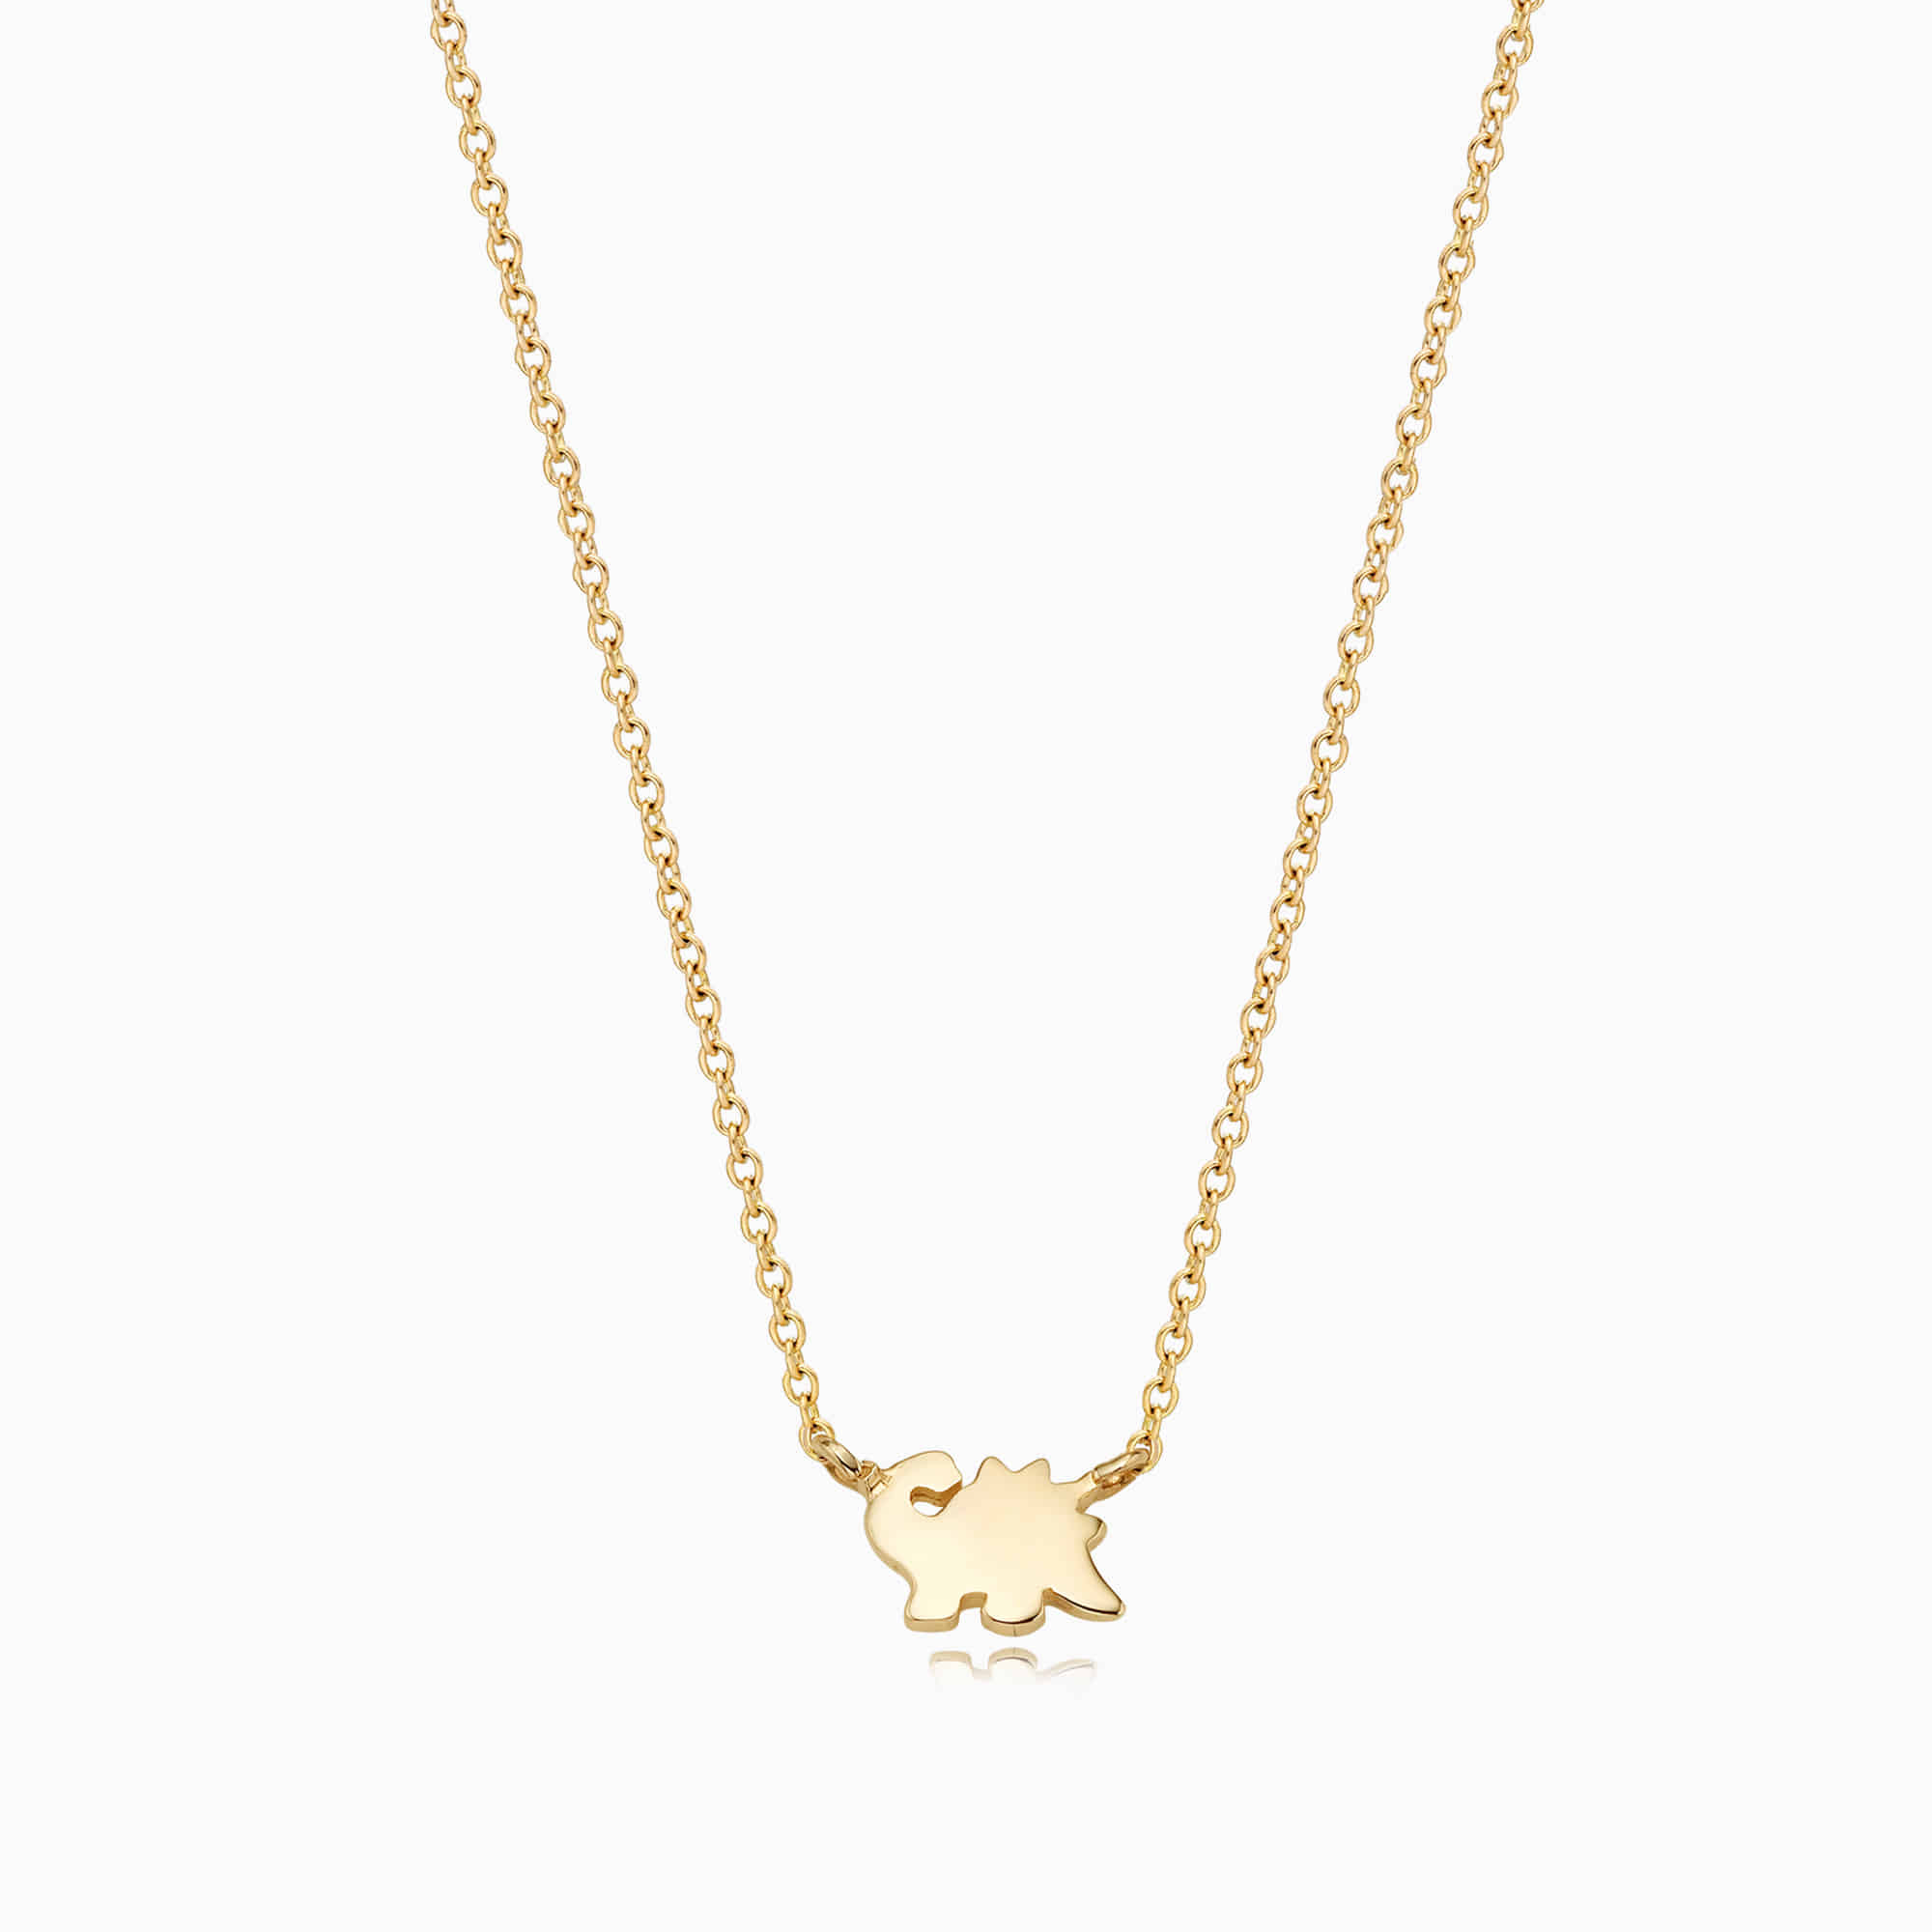 14K/18k Gold Simple Mini Dinosaur Necklace